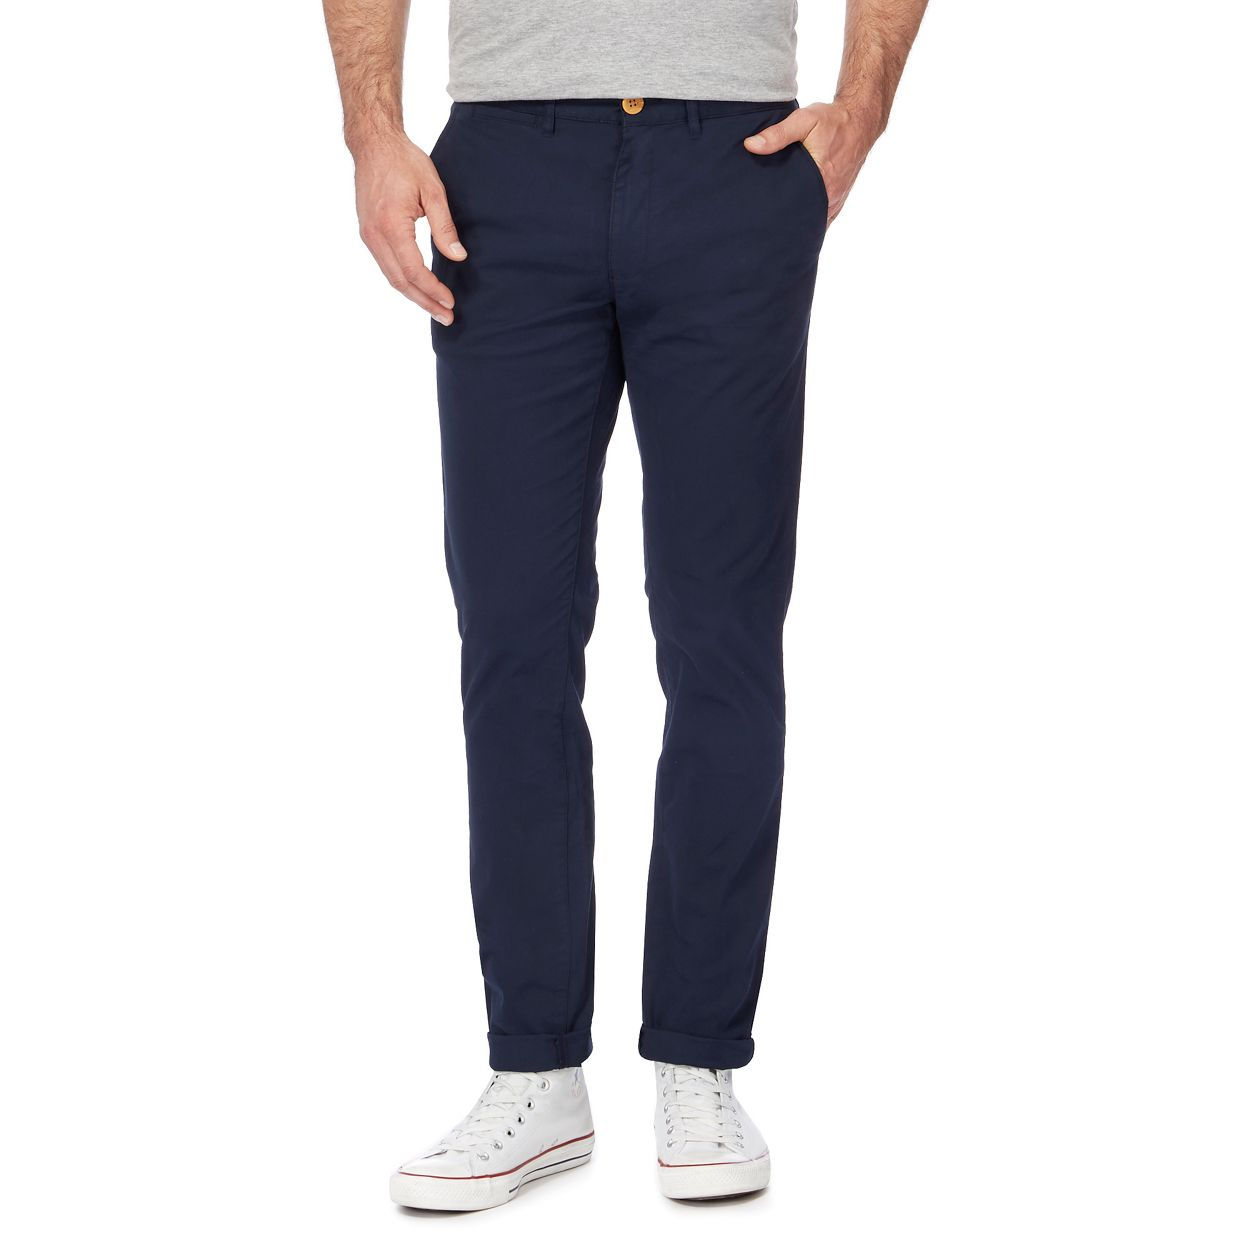 Racing Green Navy chino trousers